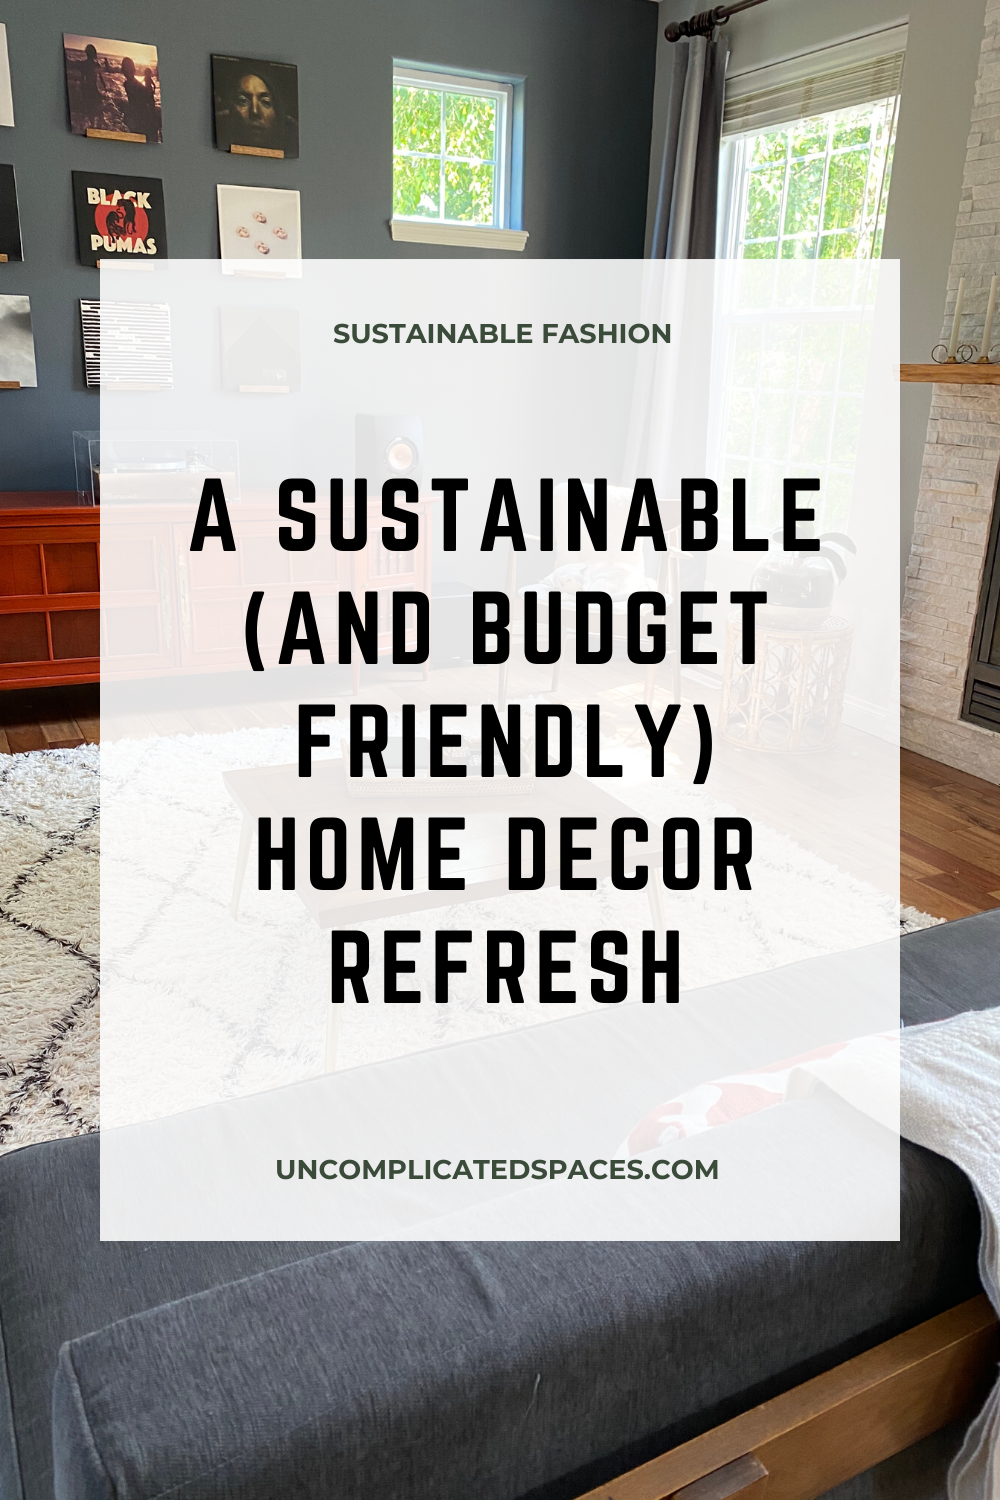 Updating home decor doesn't have to mean shopping for new things! #homedecor #homedecorideas #homedecorideaslivingroom #budgetfriendly #budgethomedecor #budgethomedecorating #decoratingonabudget